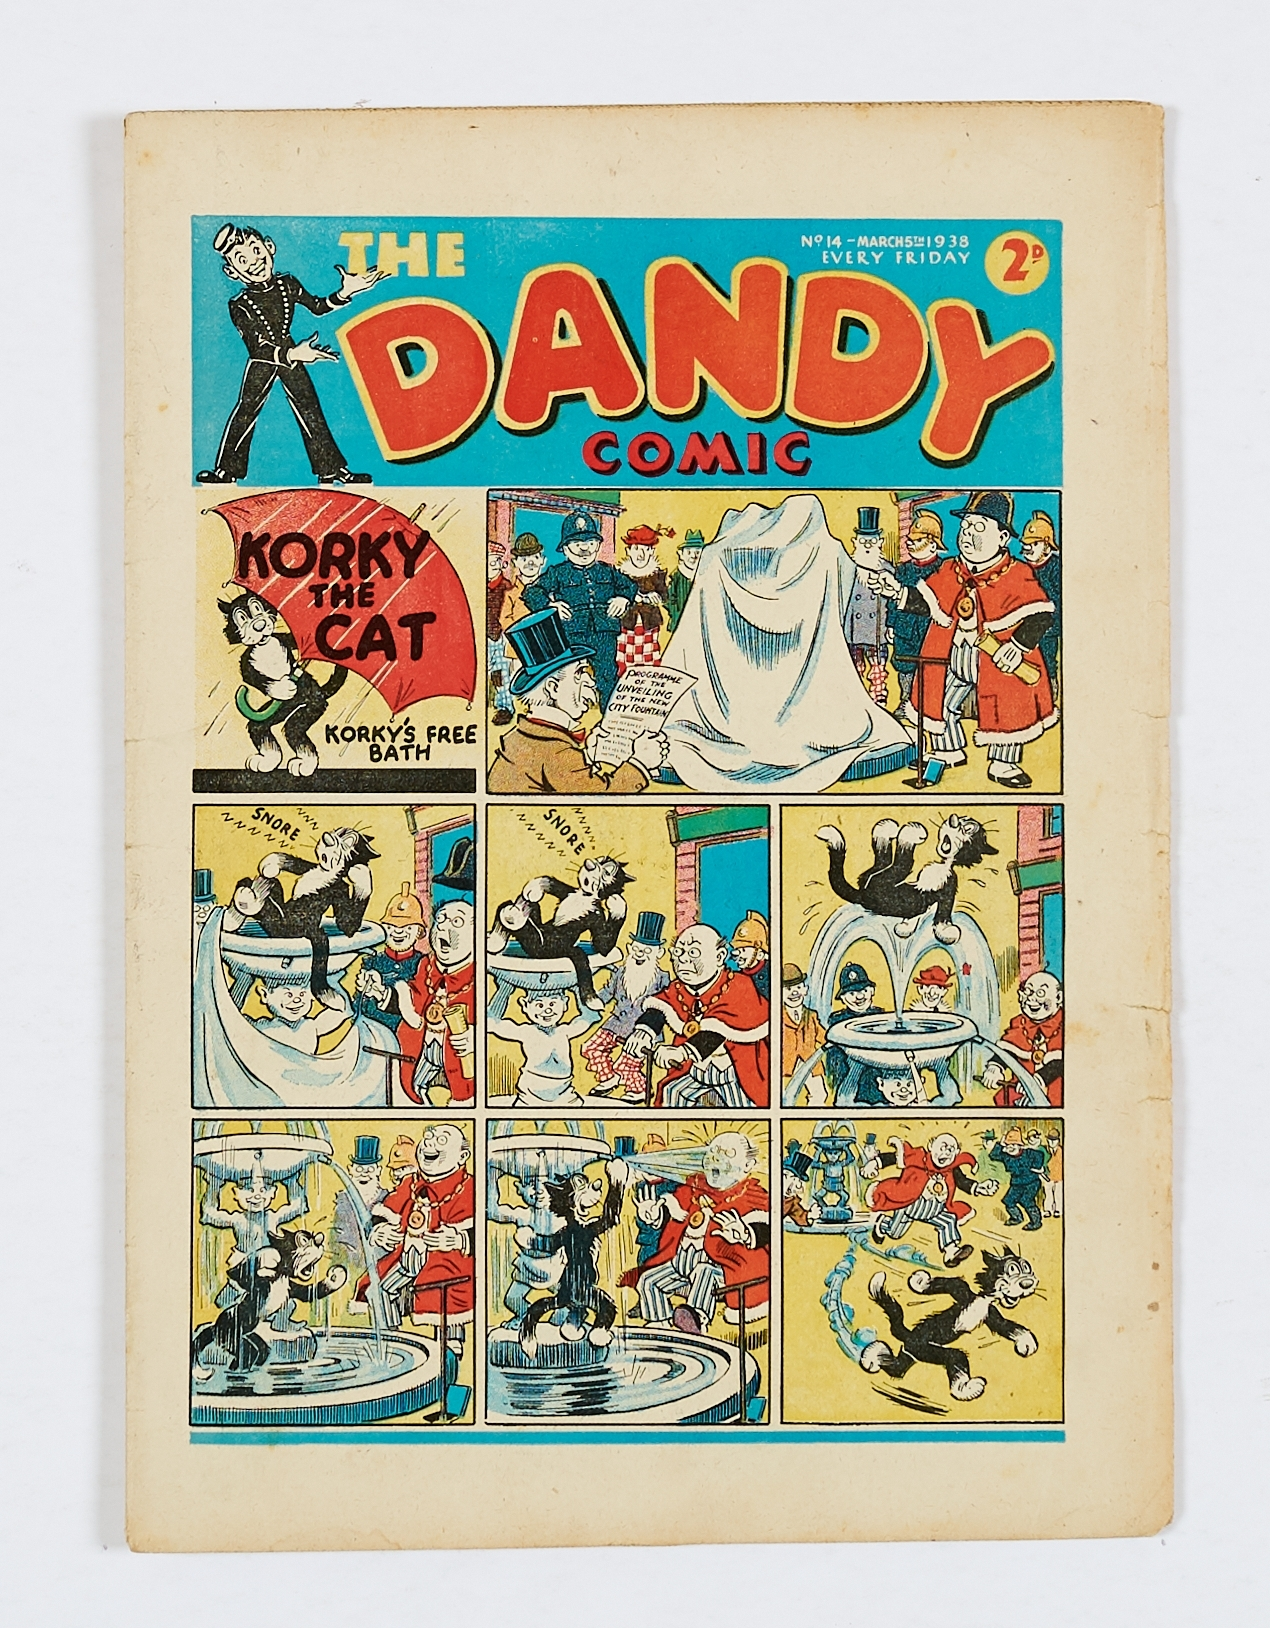 Lot 8 - Dandy No 14 (1938). Bright cover with some overhang edge wear, cream pages, a few light foxing spots